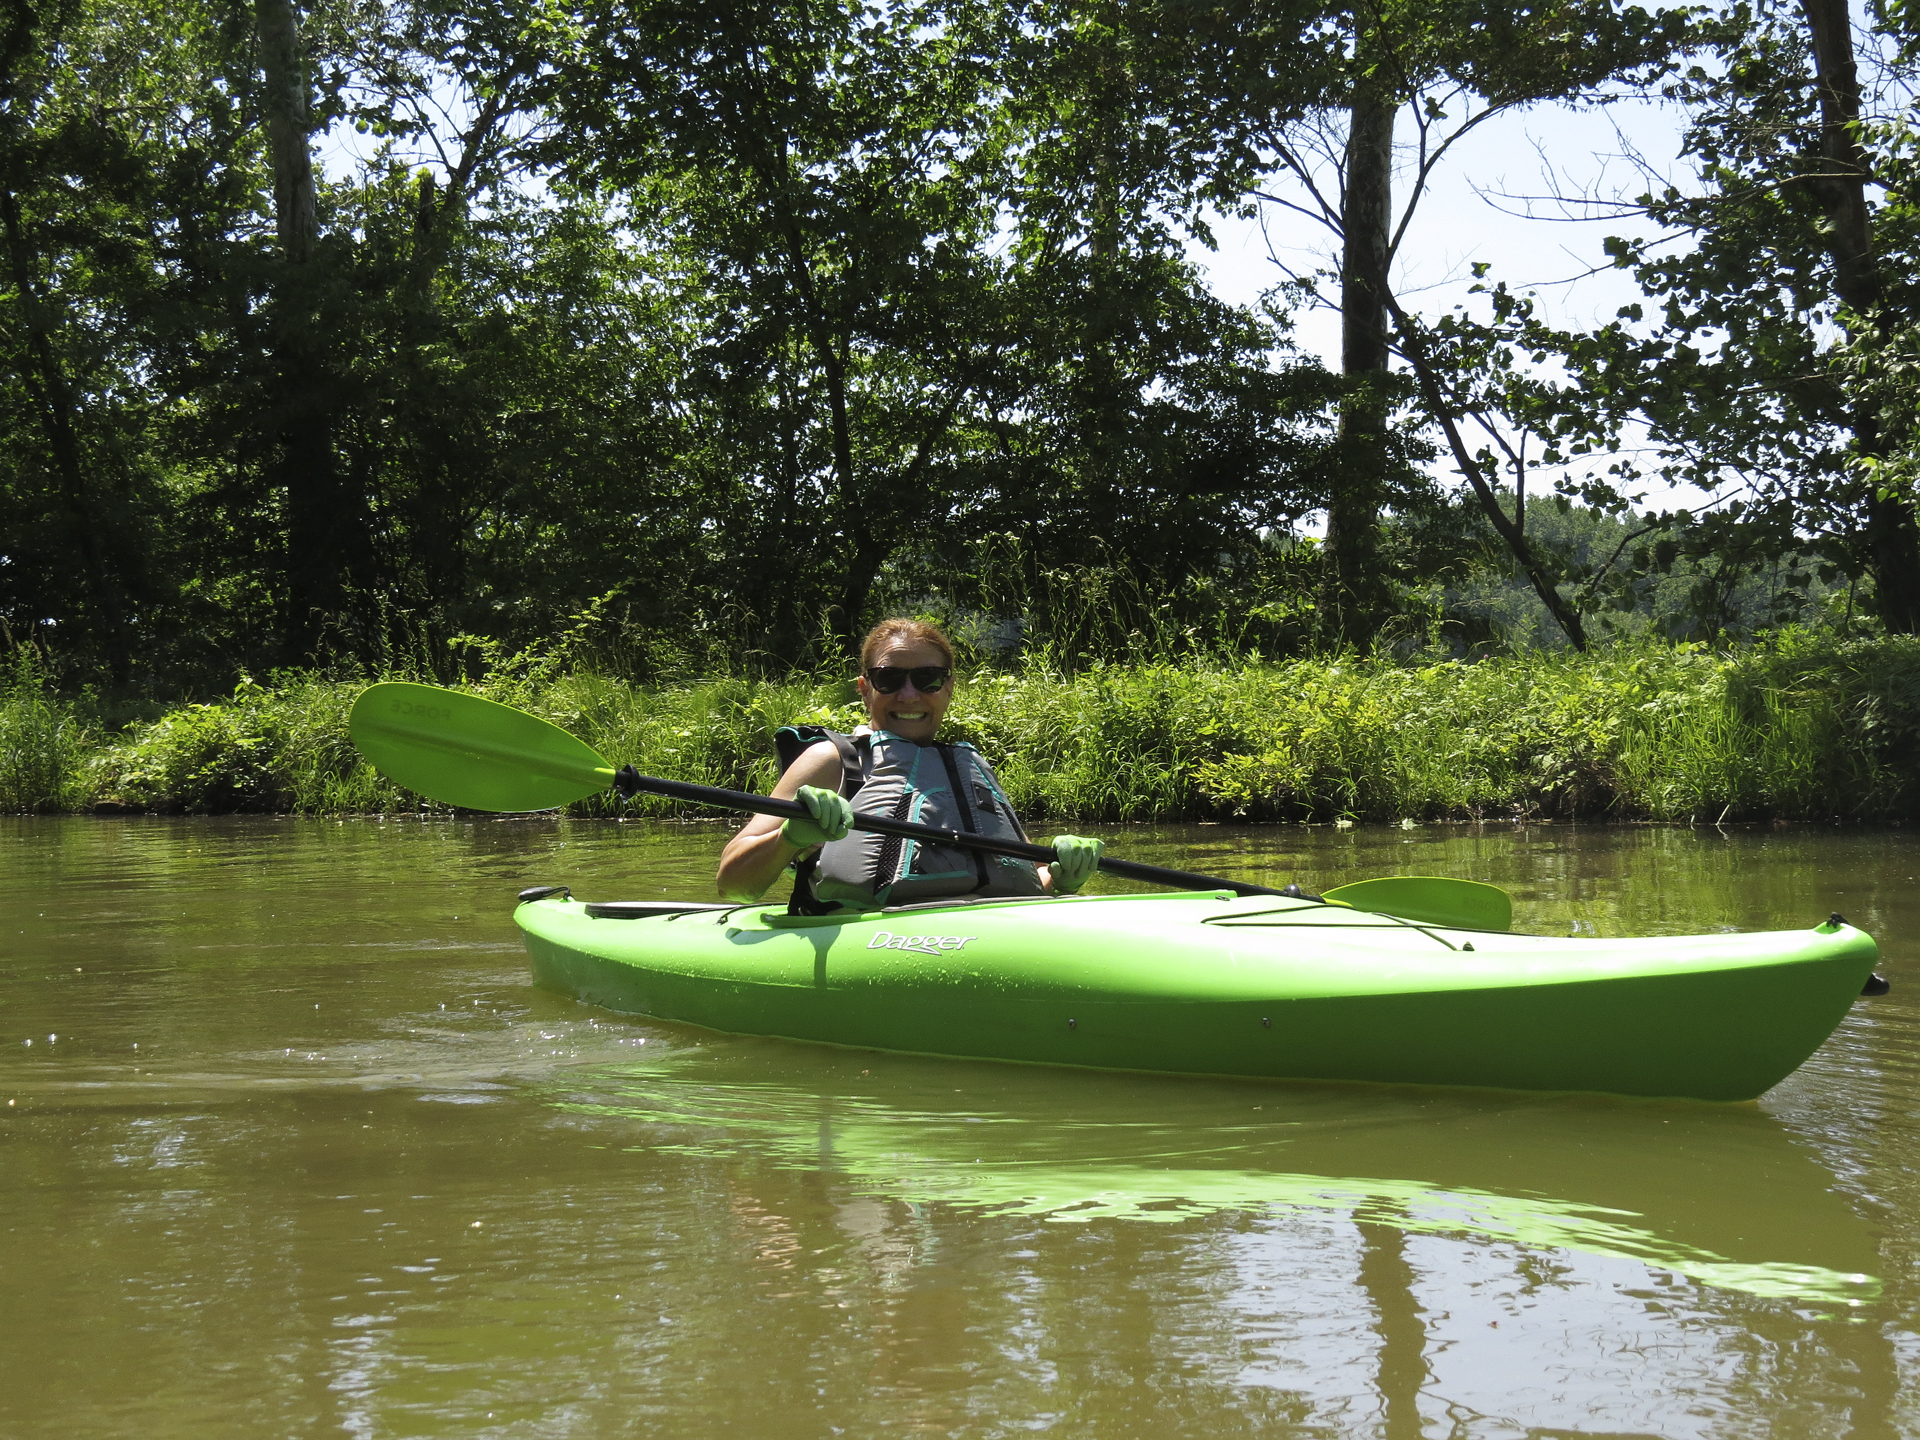 get-outside-#getoutside-trails-nature-women-kayaking-maryland-water-nature-outdoors-c&o-canal-potomac-river